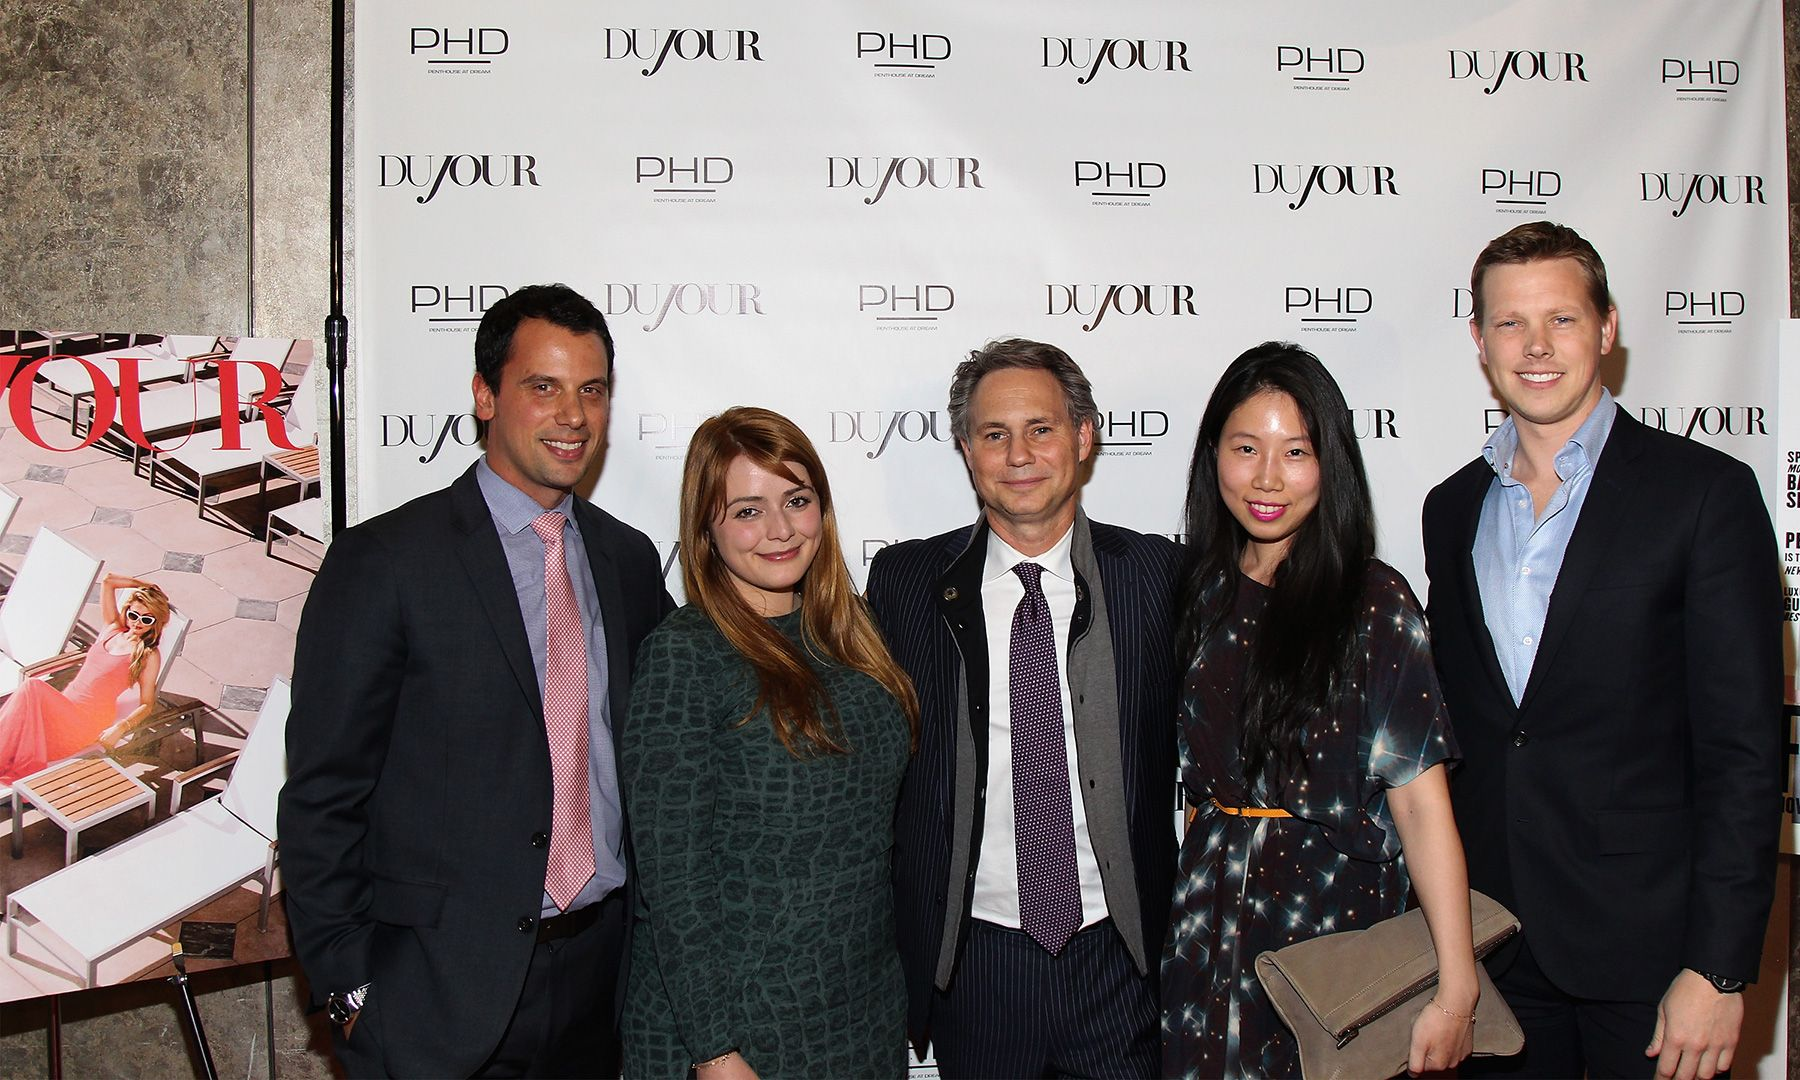 Guests celebrated the DuJour April cover star with a soirée hosted by Jason Binn at the PH-D Rooftop and Lounge at Dream Downtown in New York City. Pictured: Eric Thomassian, Ally Matha, Jason Binn, Irene Peng, Severin Carlson